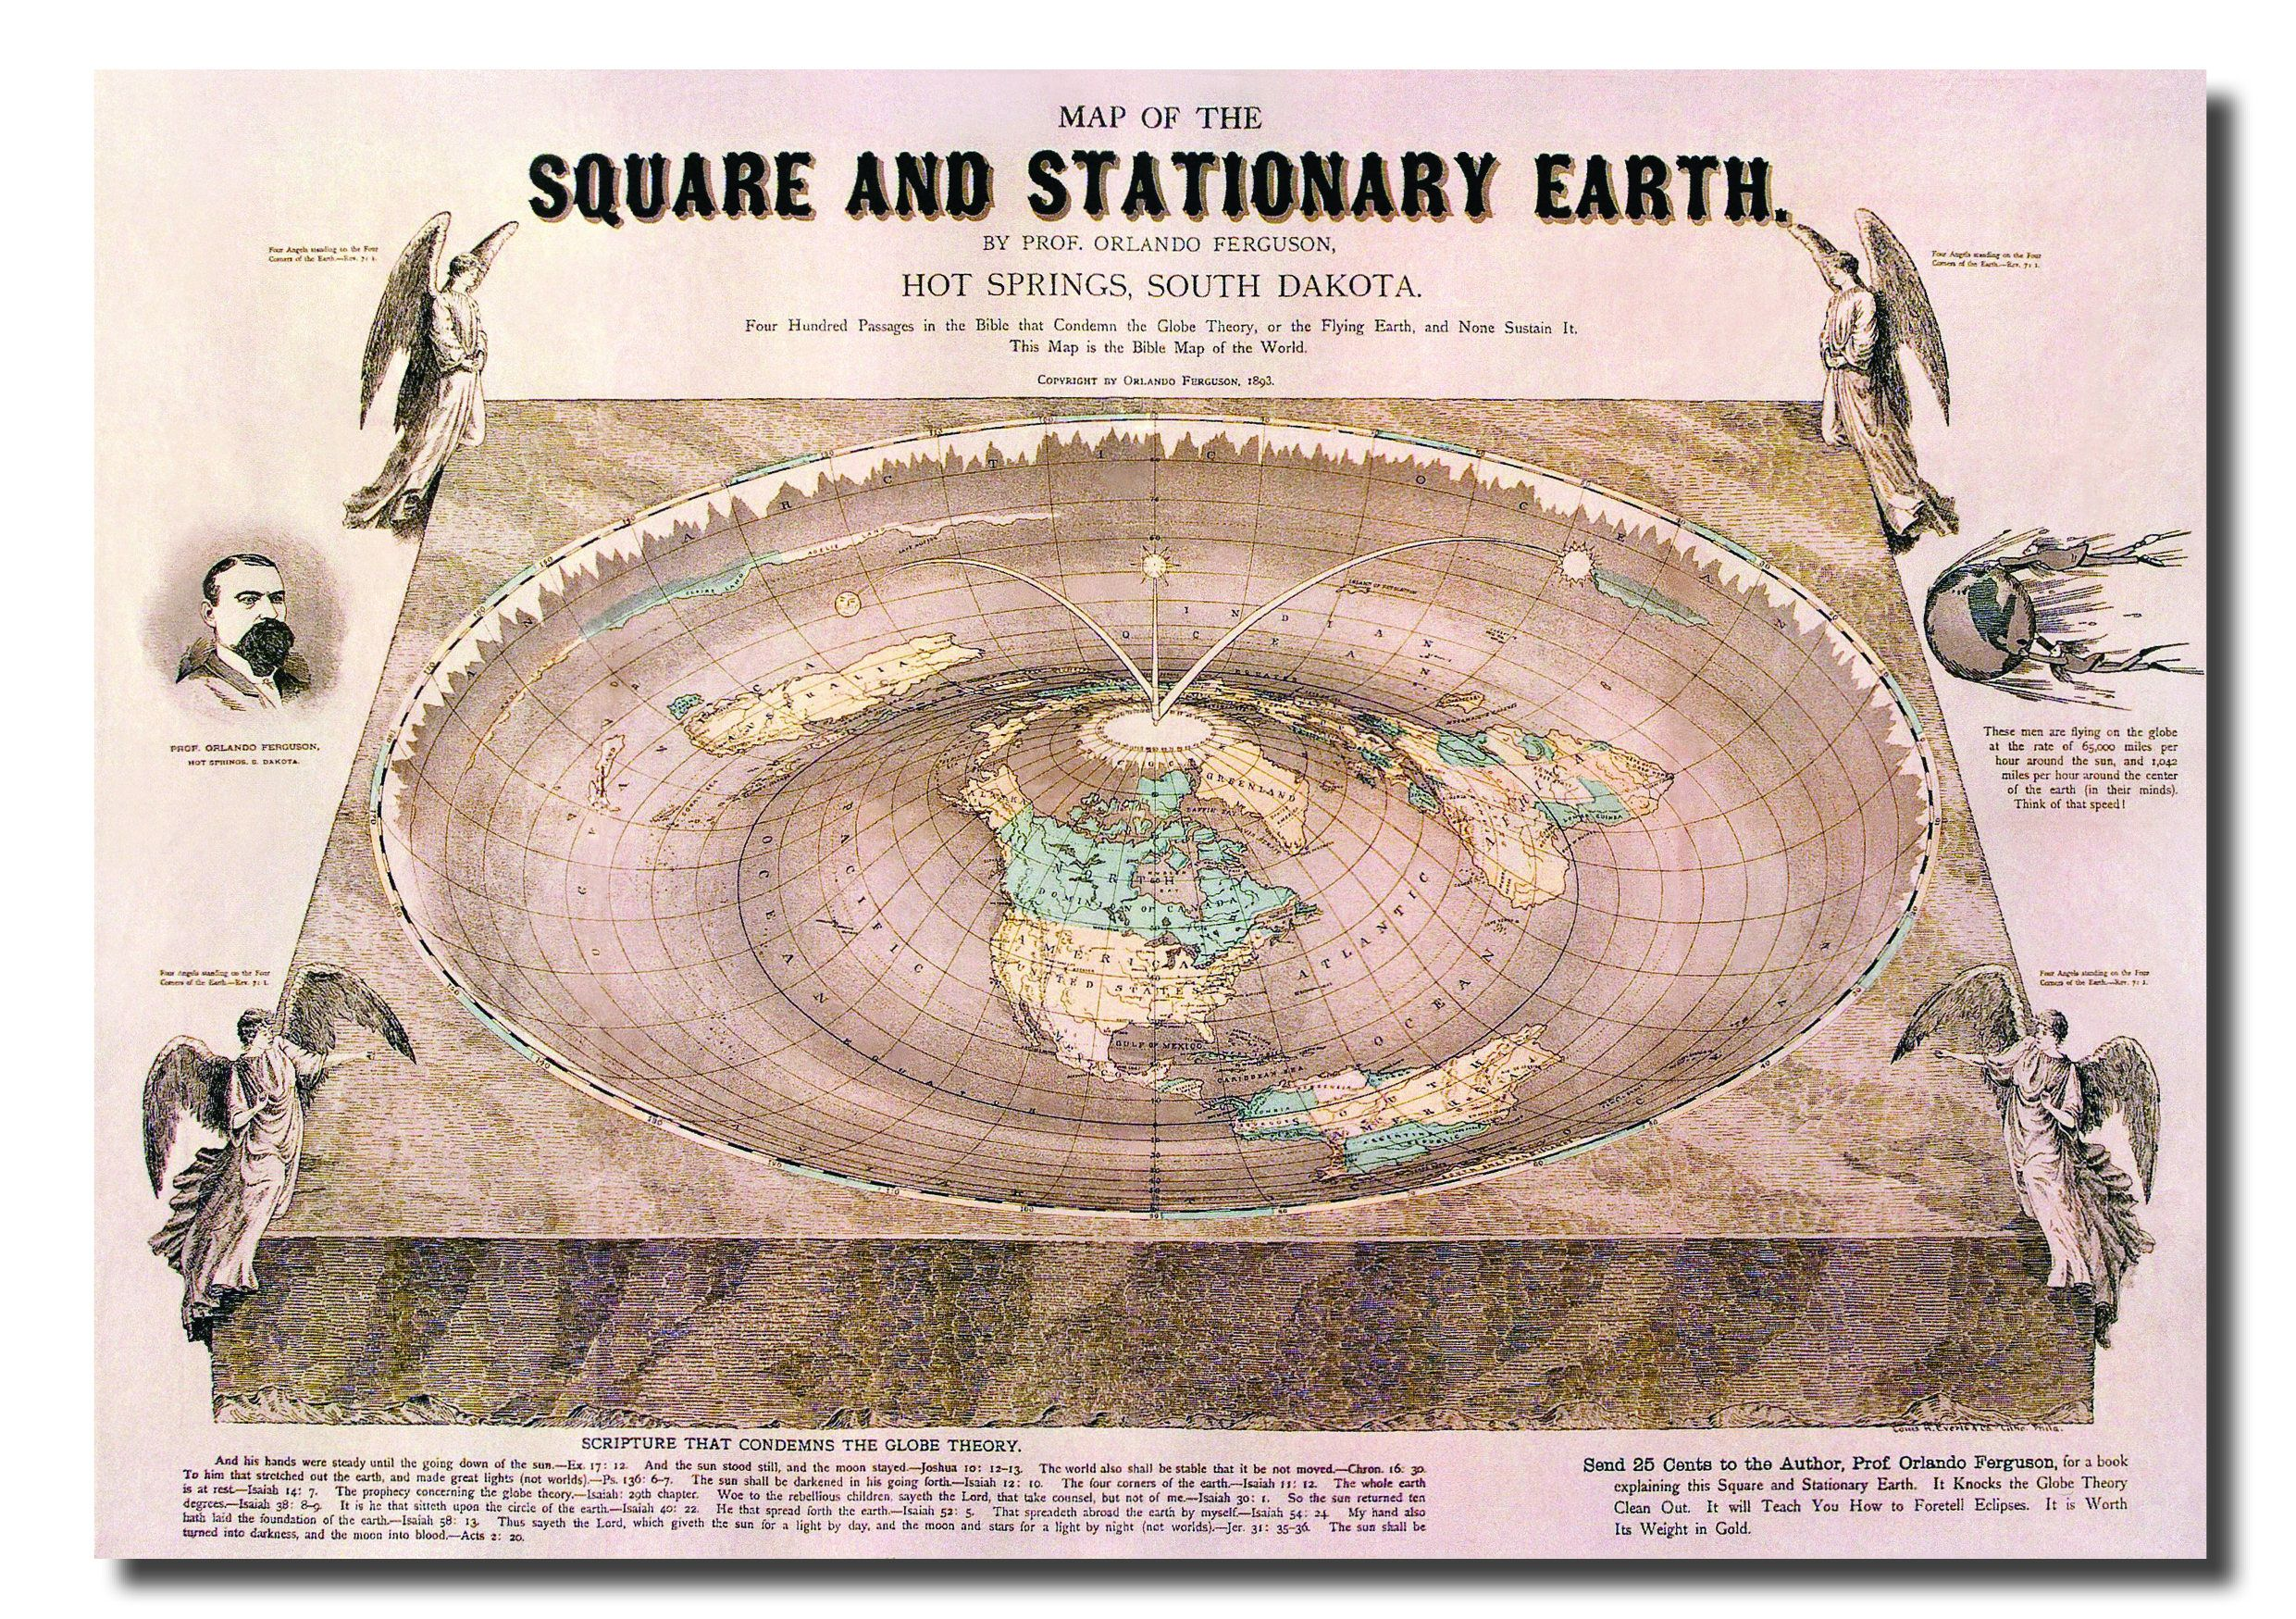 Square Earth Map.Square And Stationary Earth Flat Earth Poster Flat Earth Maps